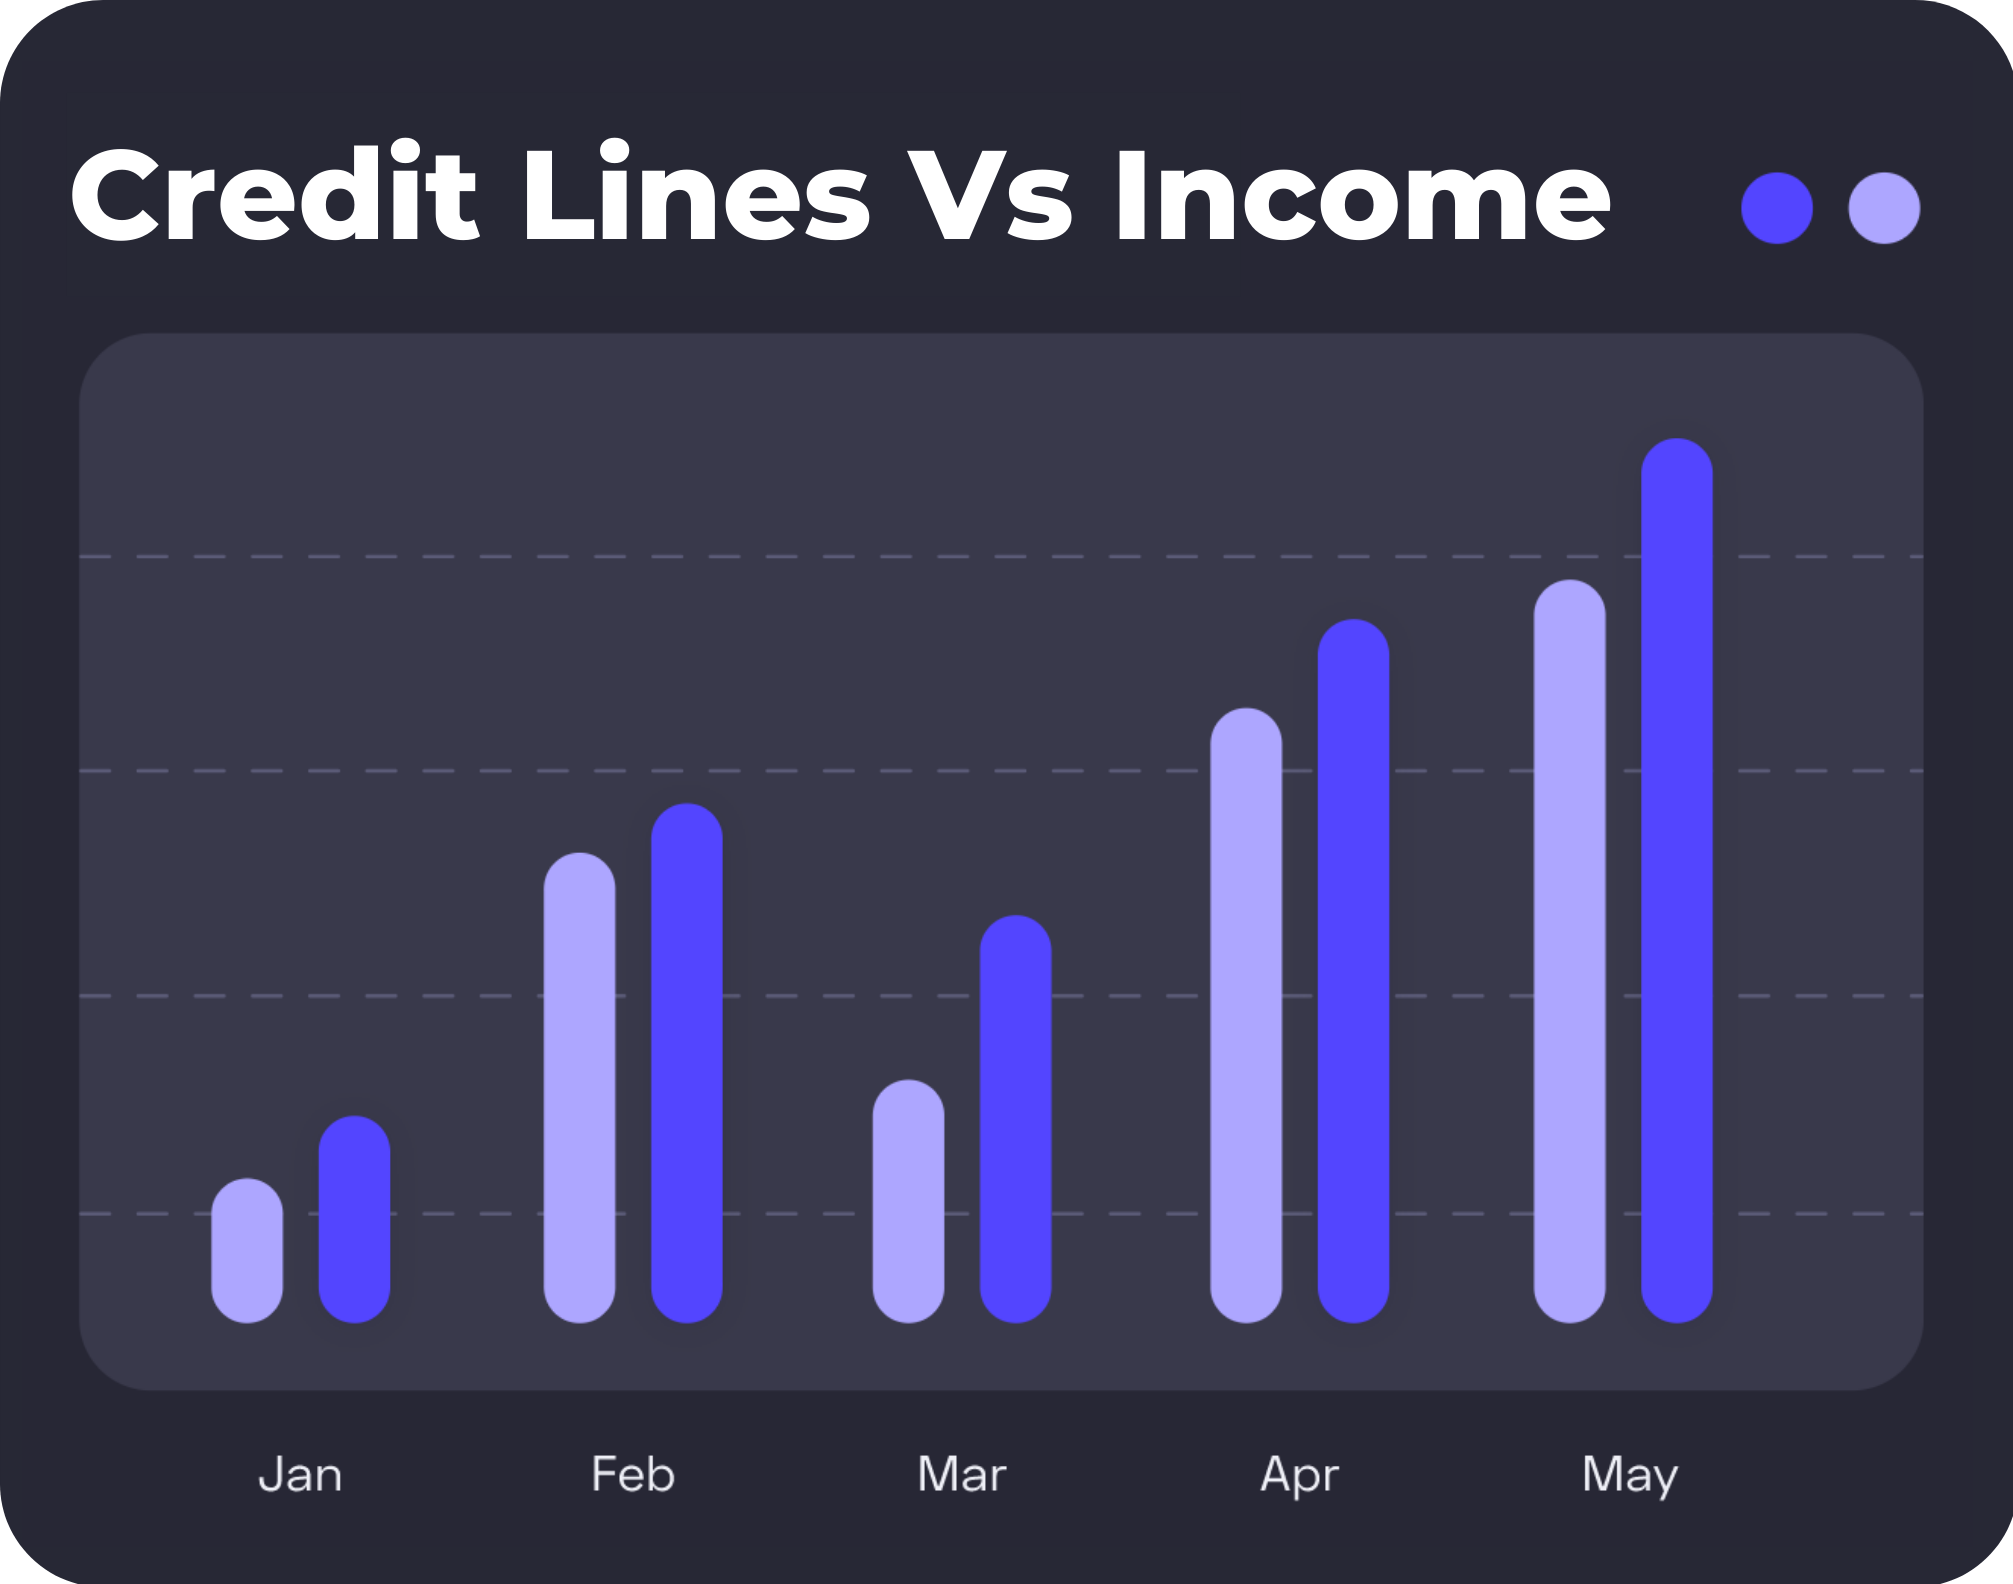 Credit lines vs. income chart